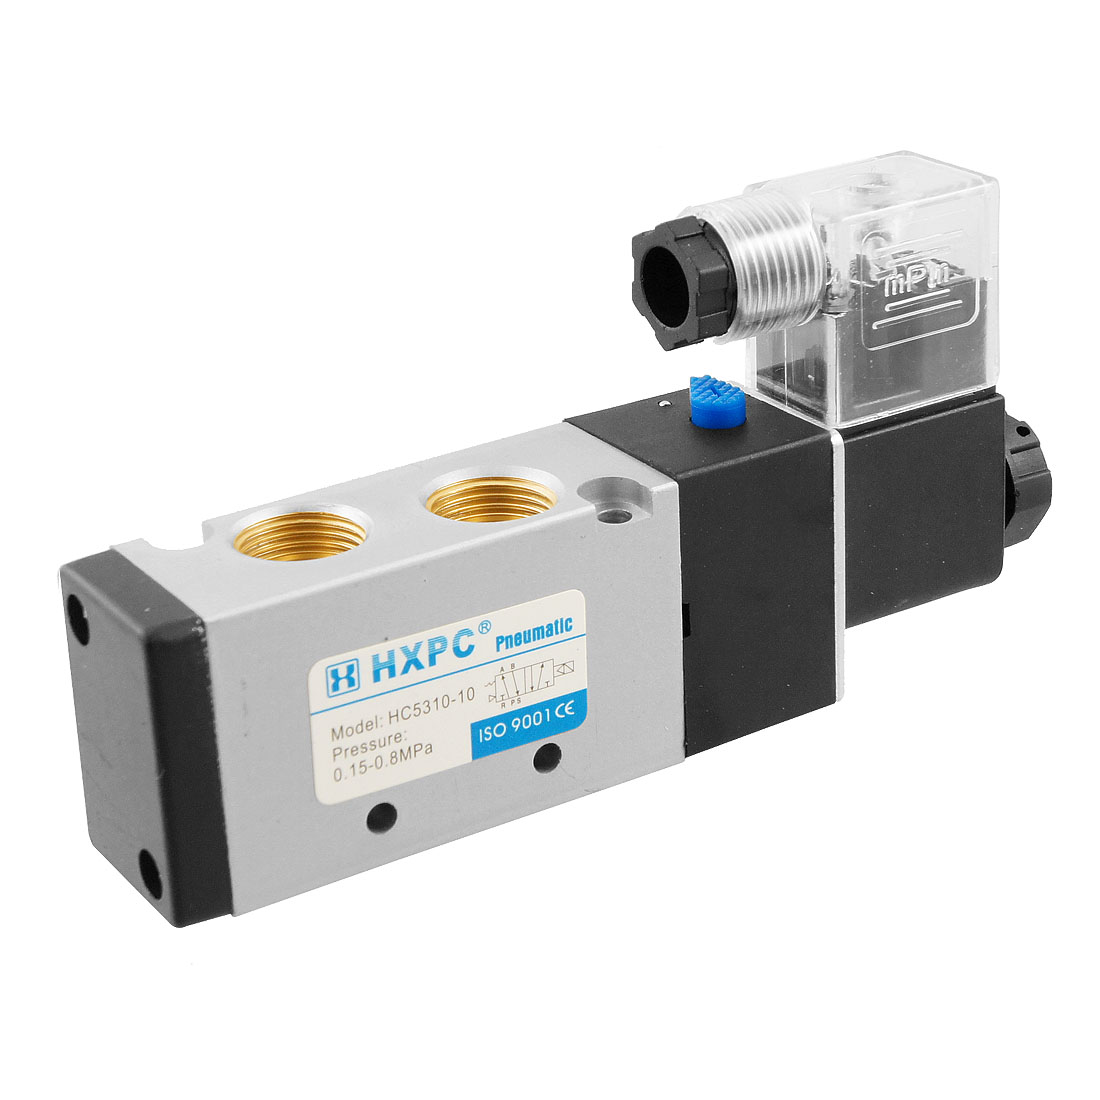 HC5310-10 AC 220V 50mA 5 Port 3/8 PT Air Inlet Outlet Solenoid Valve